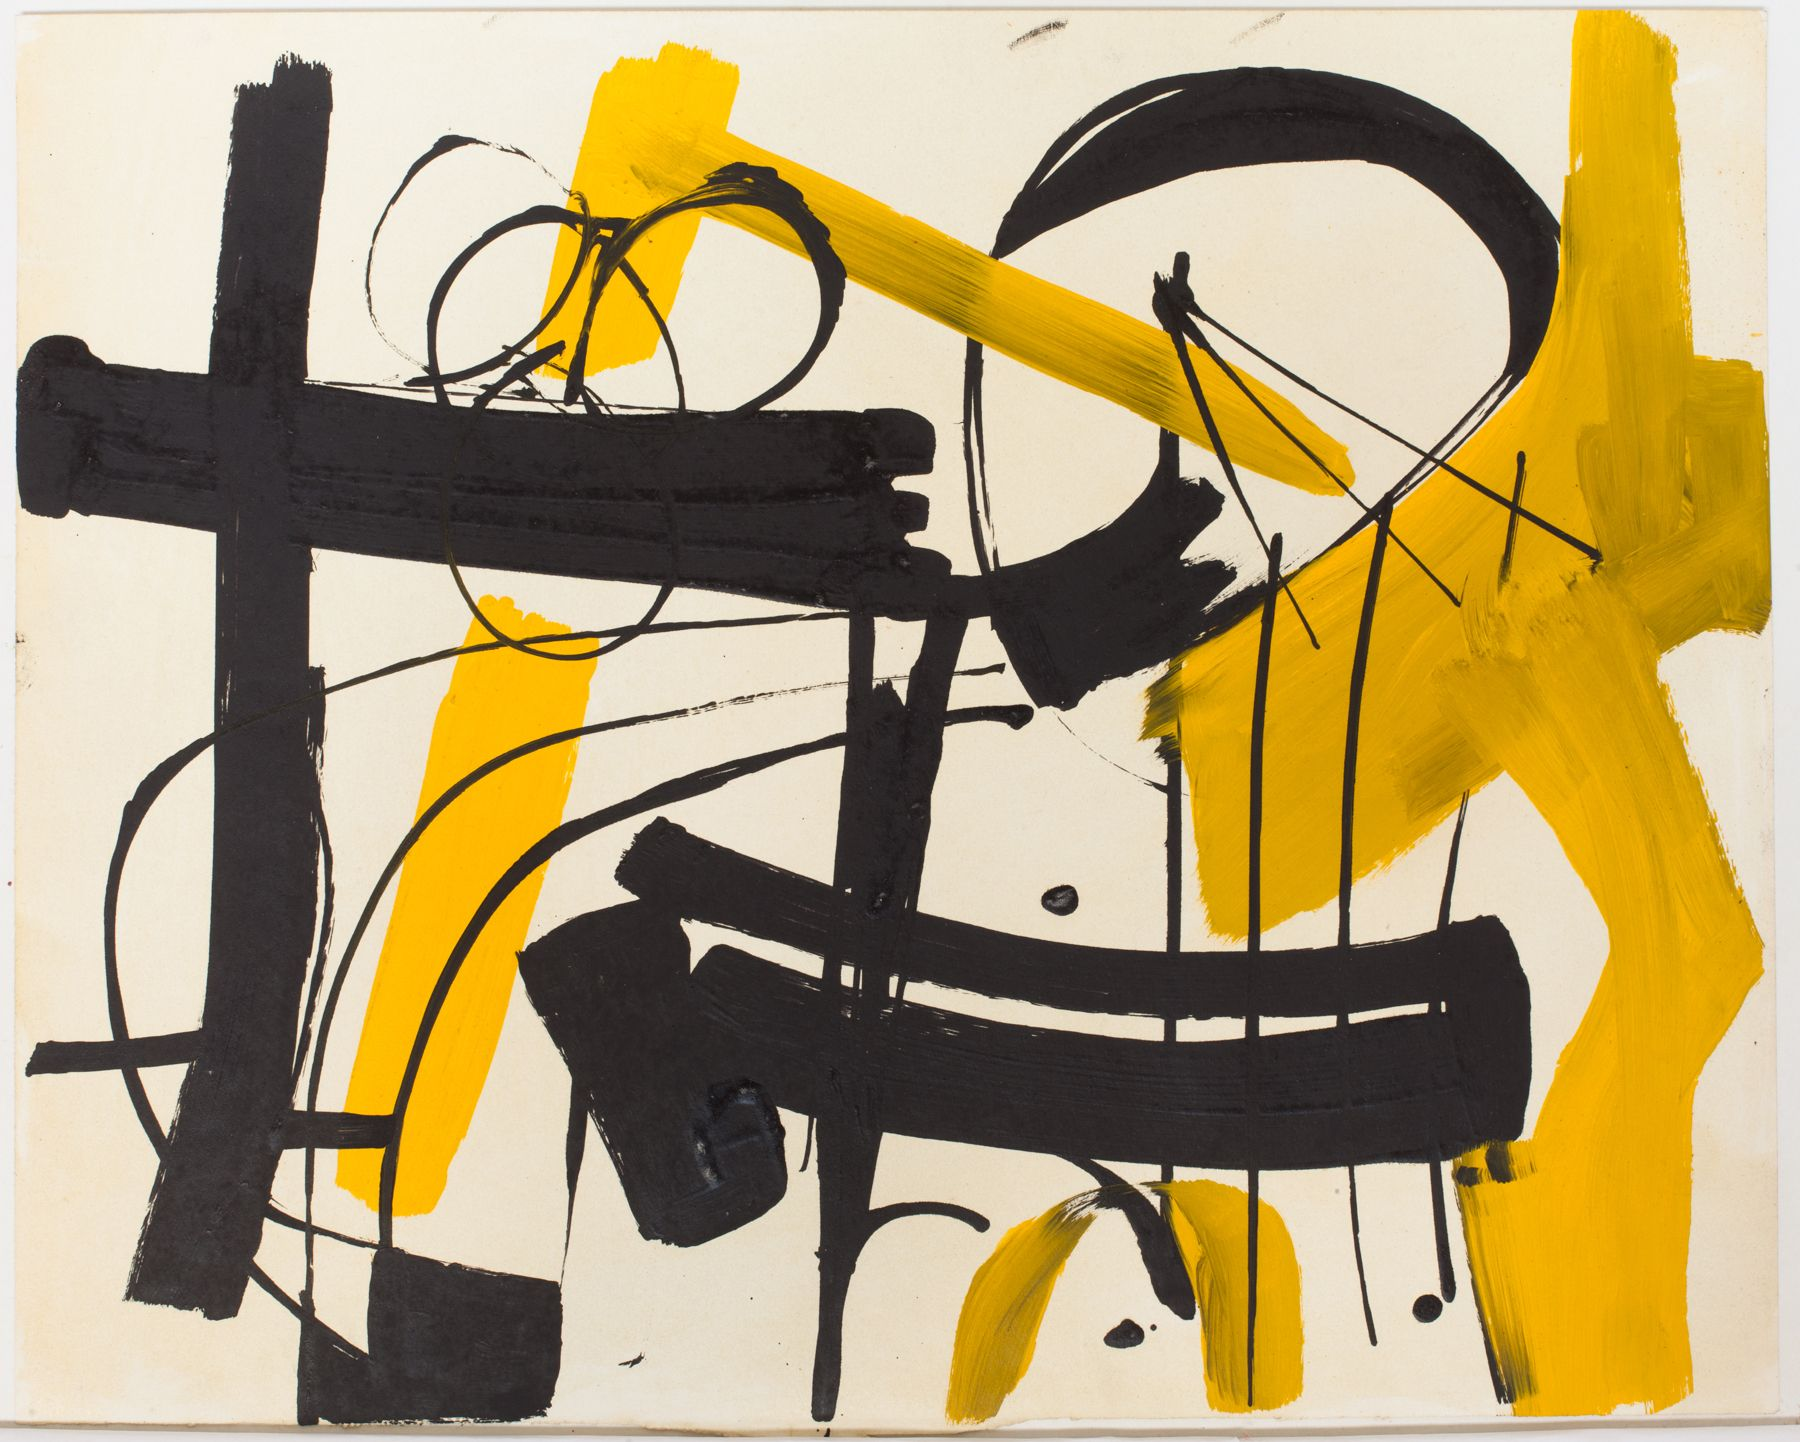 Untitled (Abstract Composition), c. 1948, Oil on paper